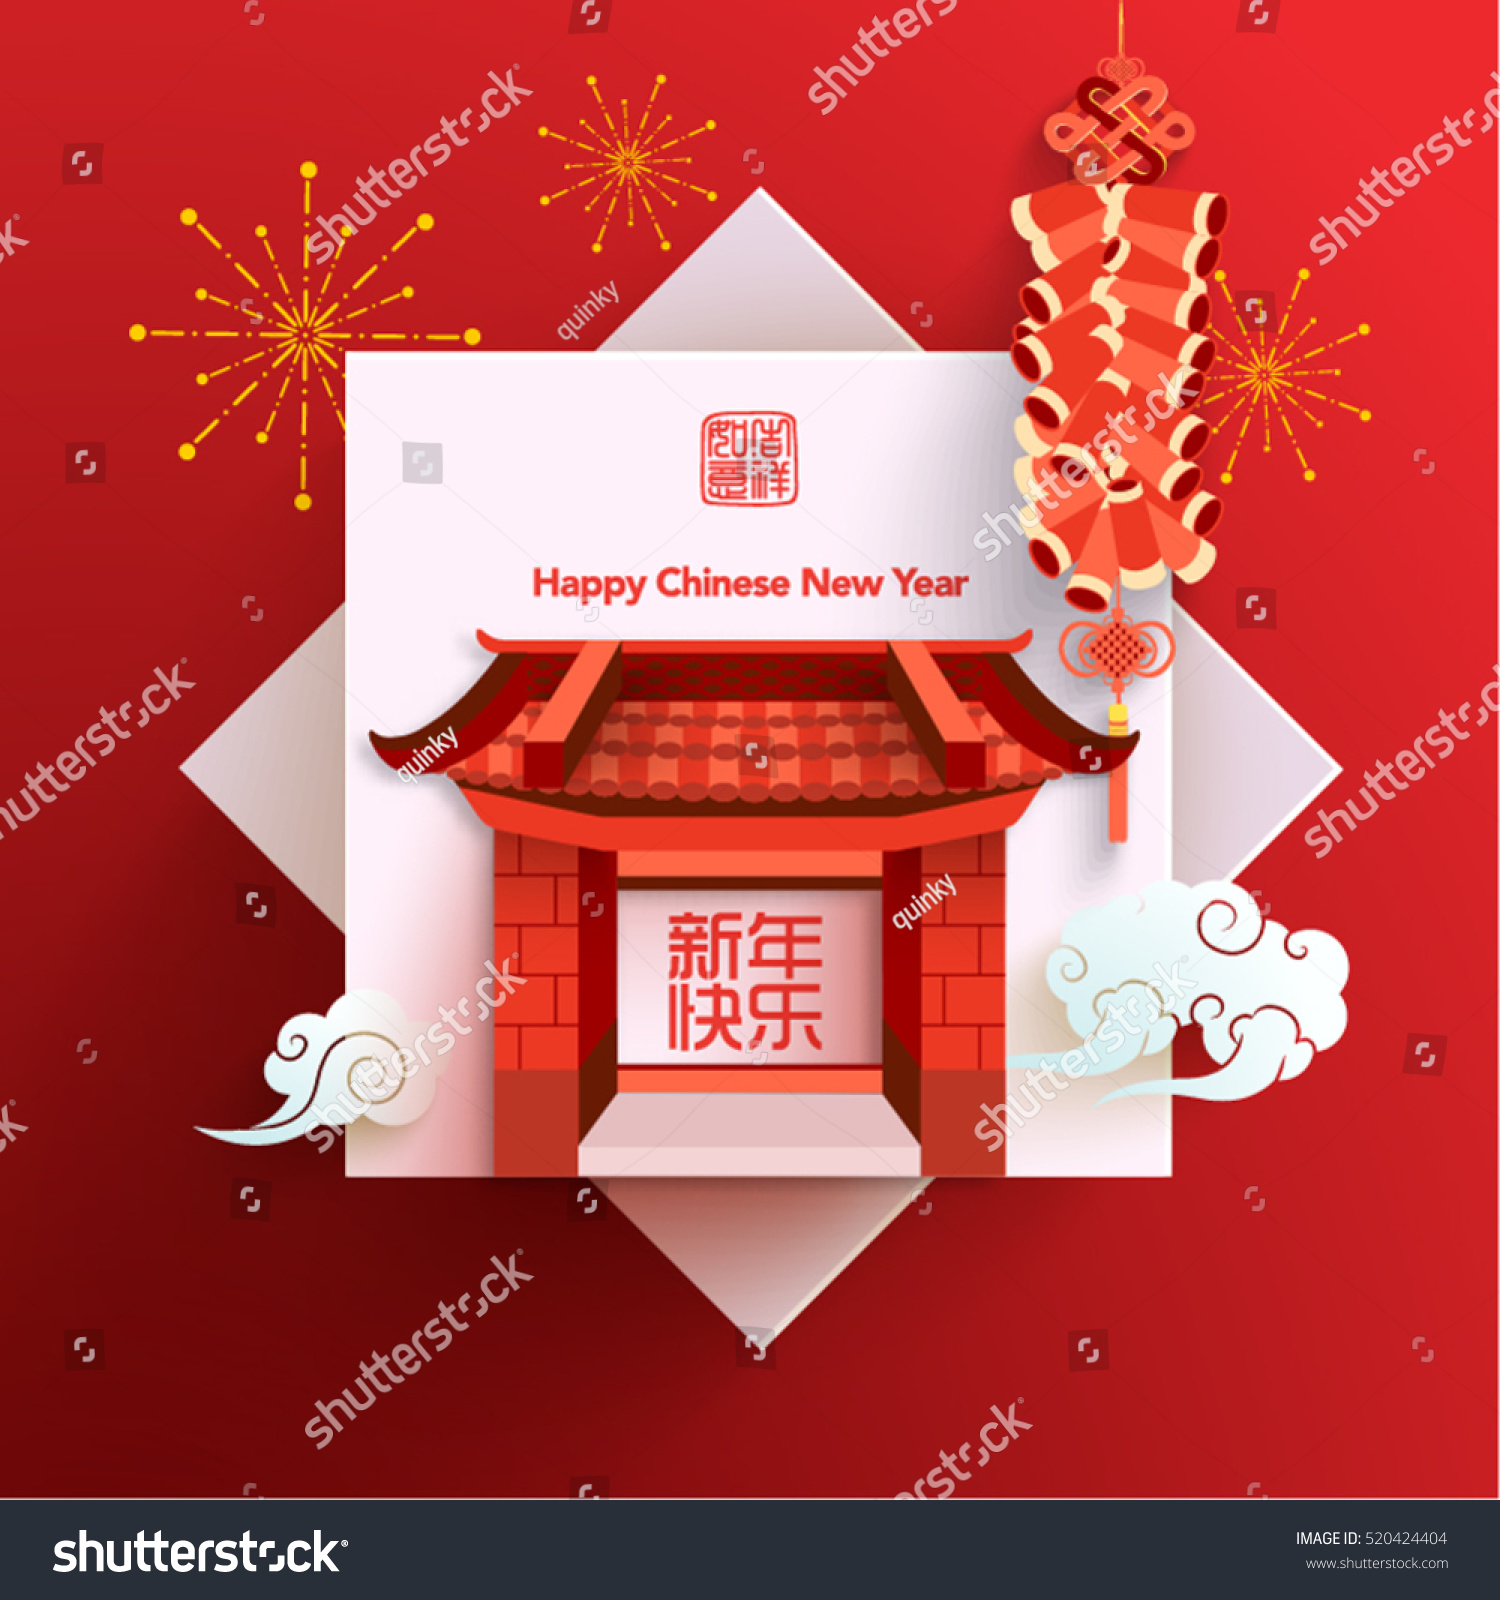 Chinese New Year Temple Conceptual Vector Design  (Chinese Translation: Happy New Year; Prosperity)